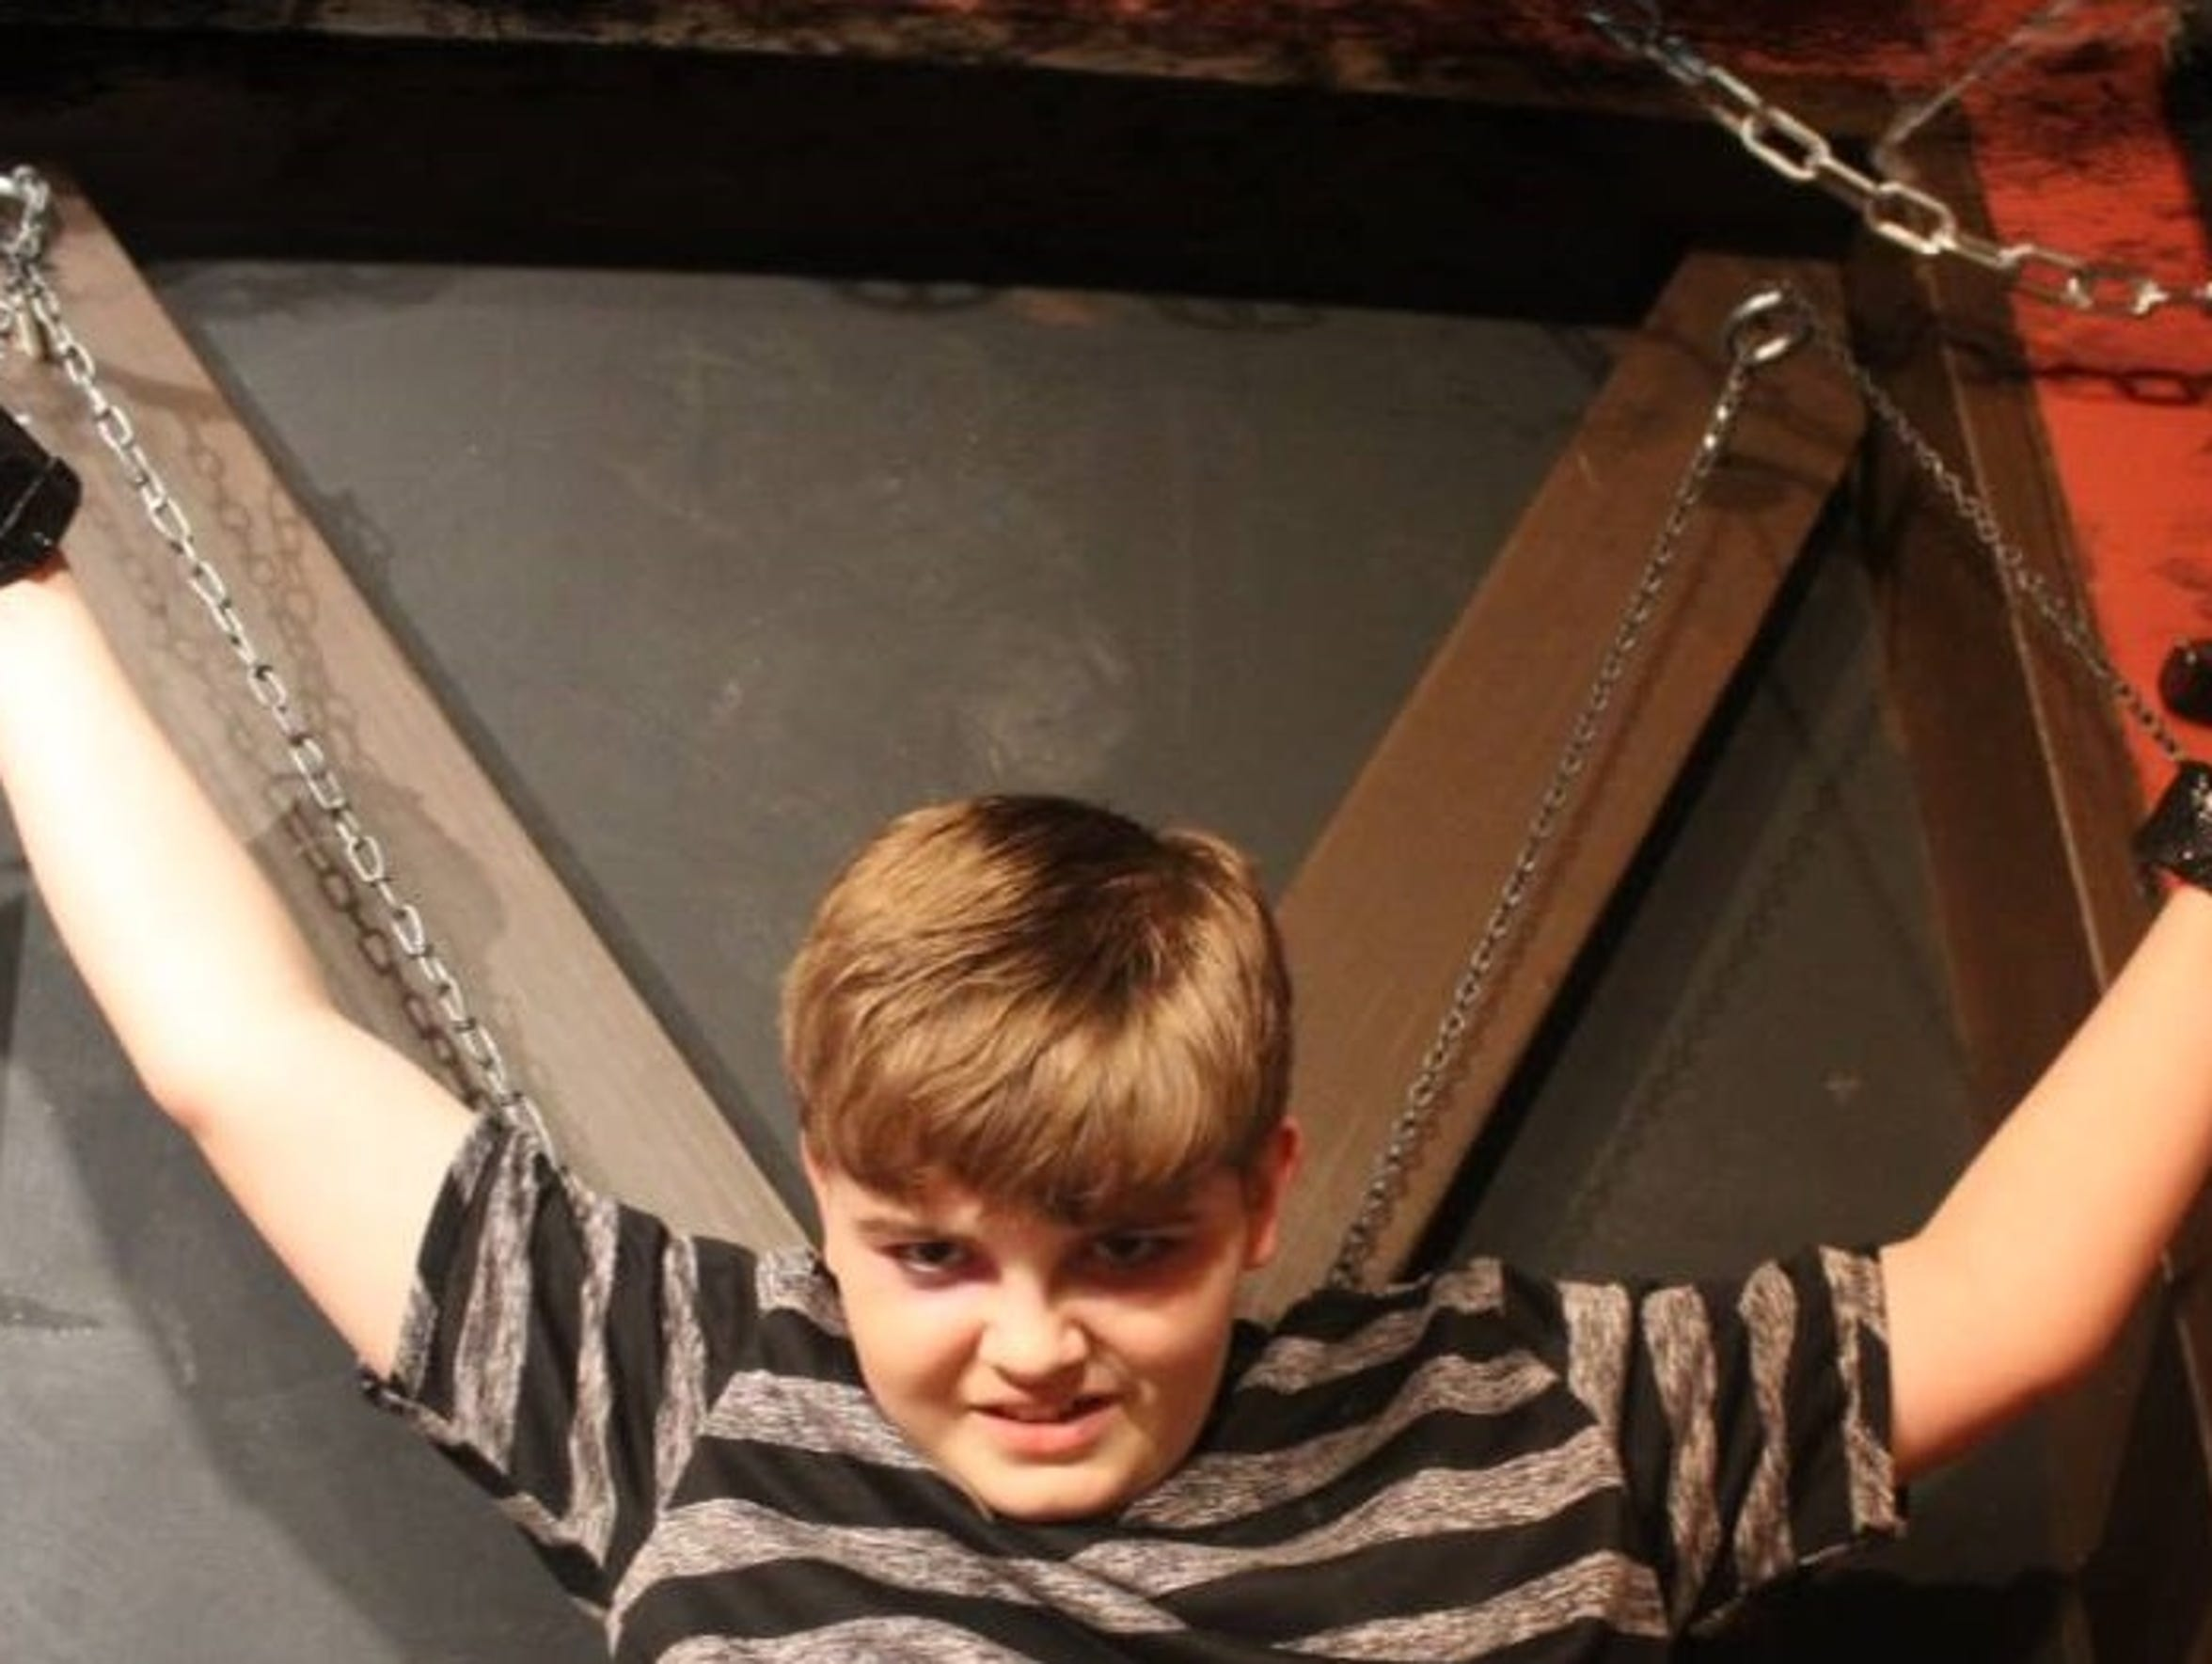 Save Pugsley. Buy a ticket to see 'The Addams Family'